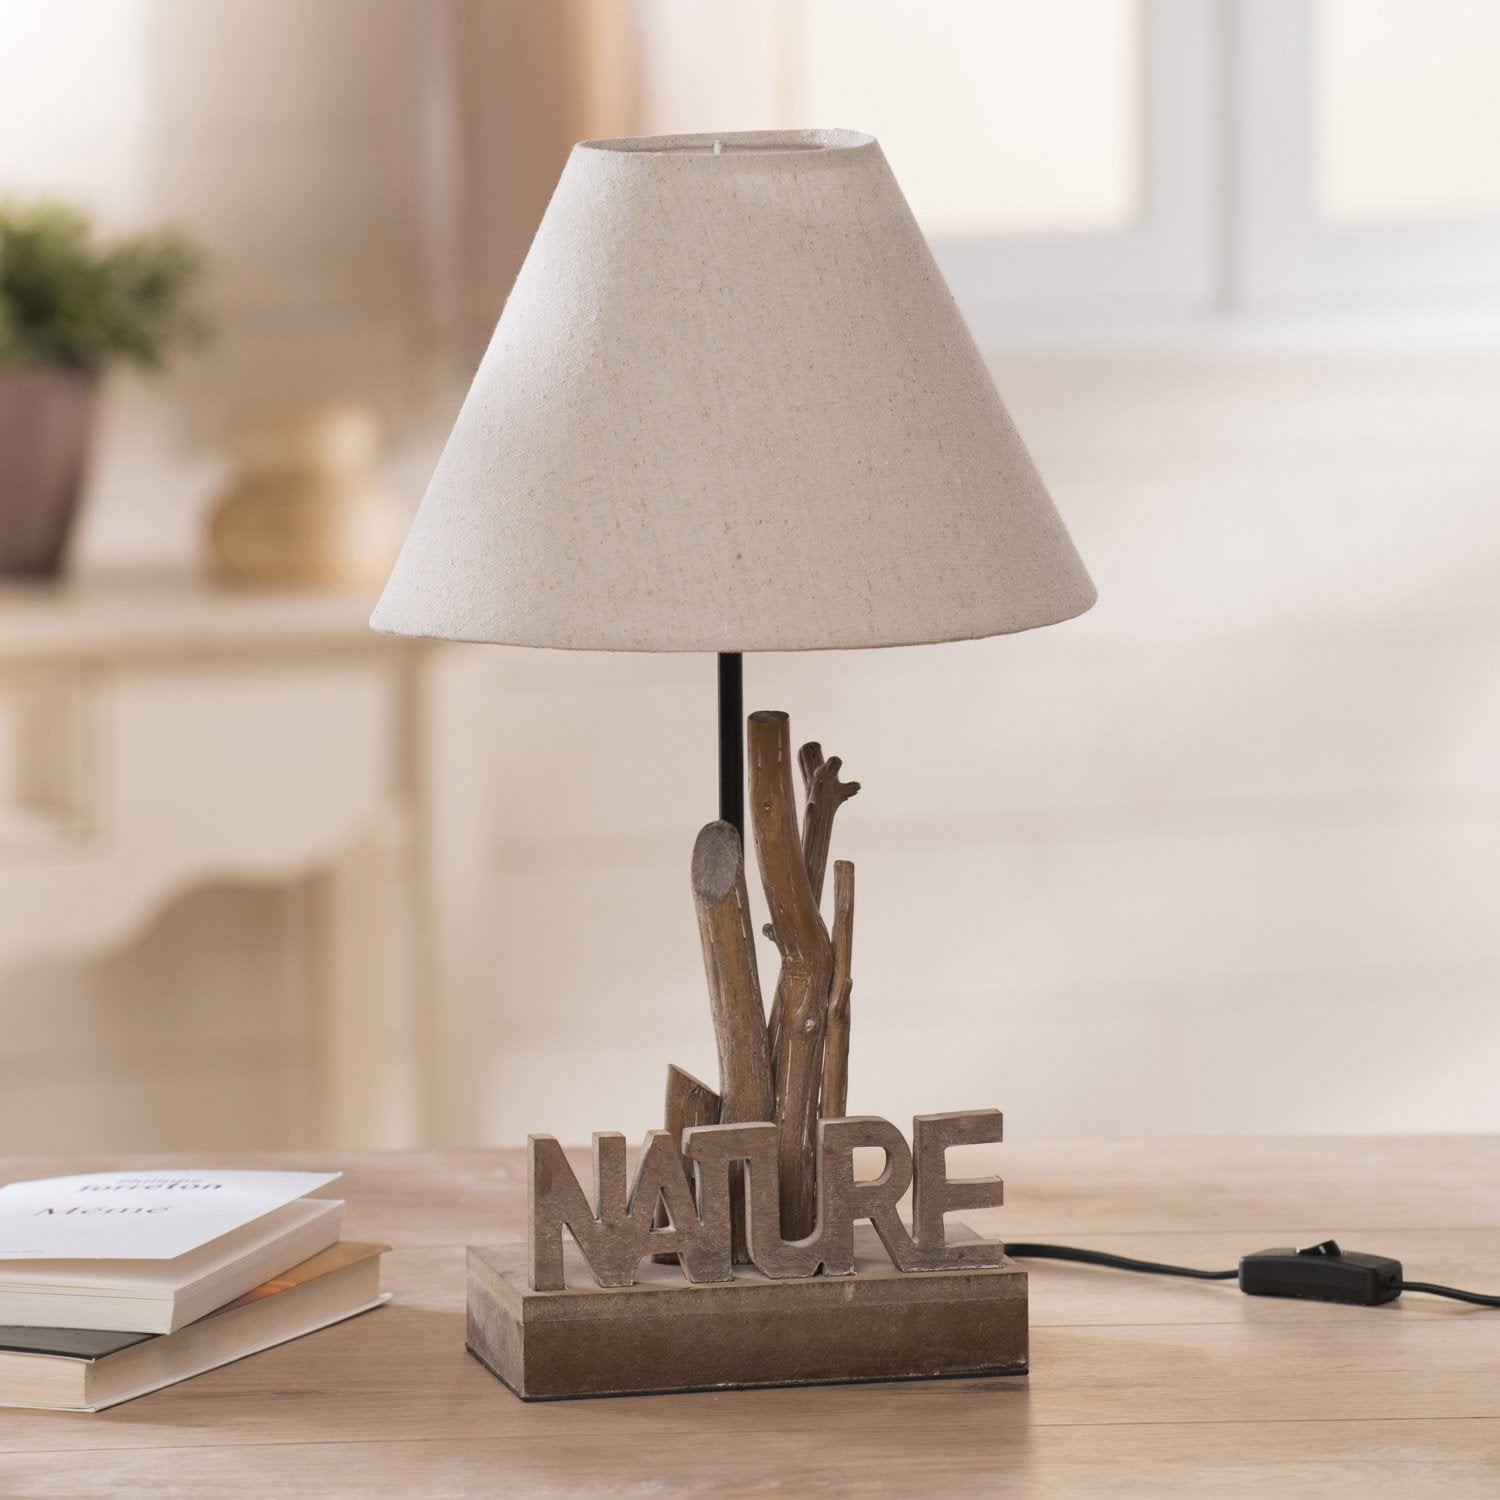 Lampadaire Salon Pas Cher Lampadaire Salon Pas Cher With Lampadaire